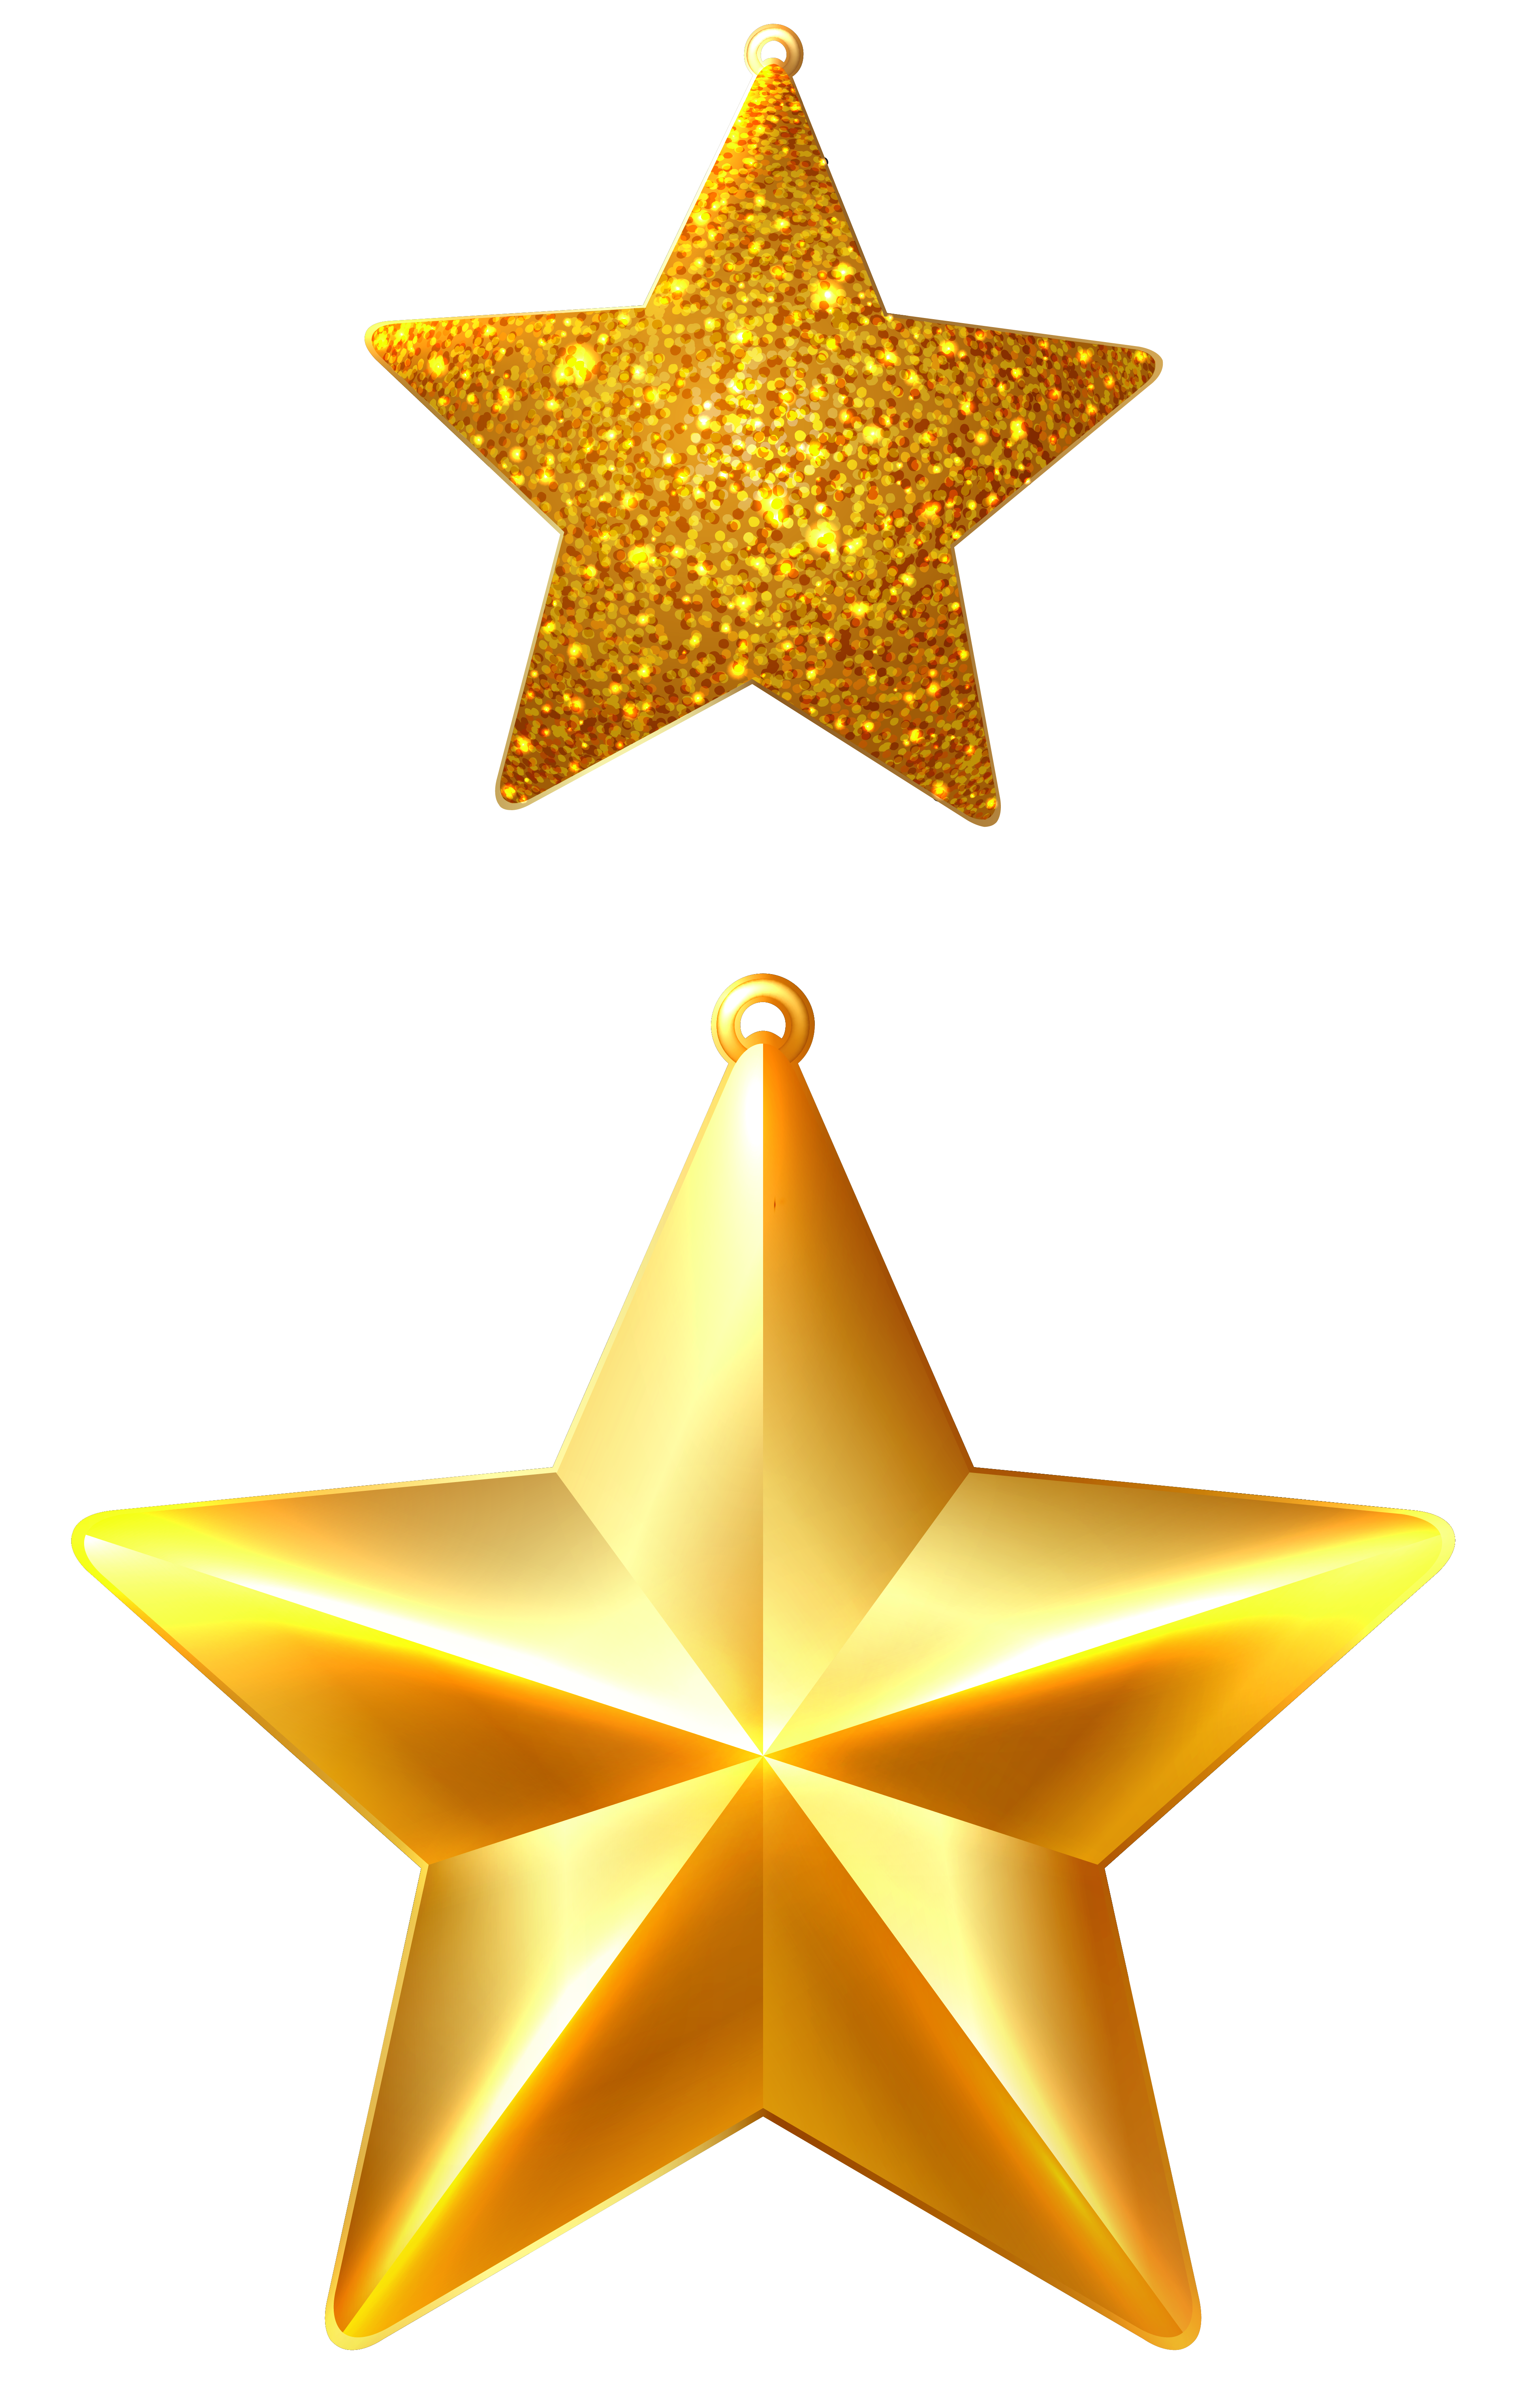 Stars ornaments png image. Nativity clipart christmas star